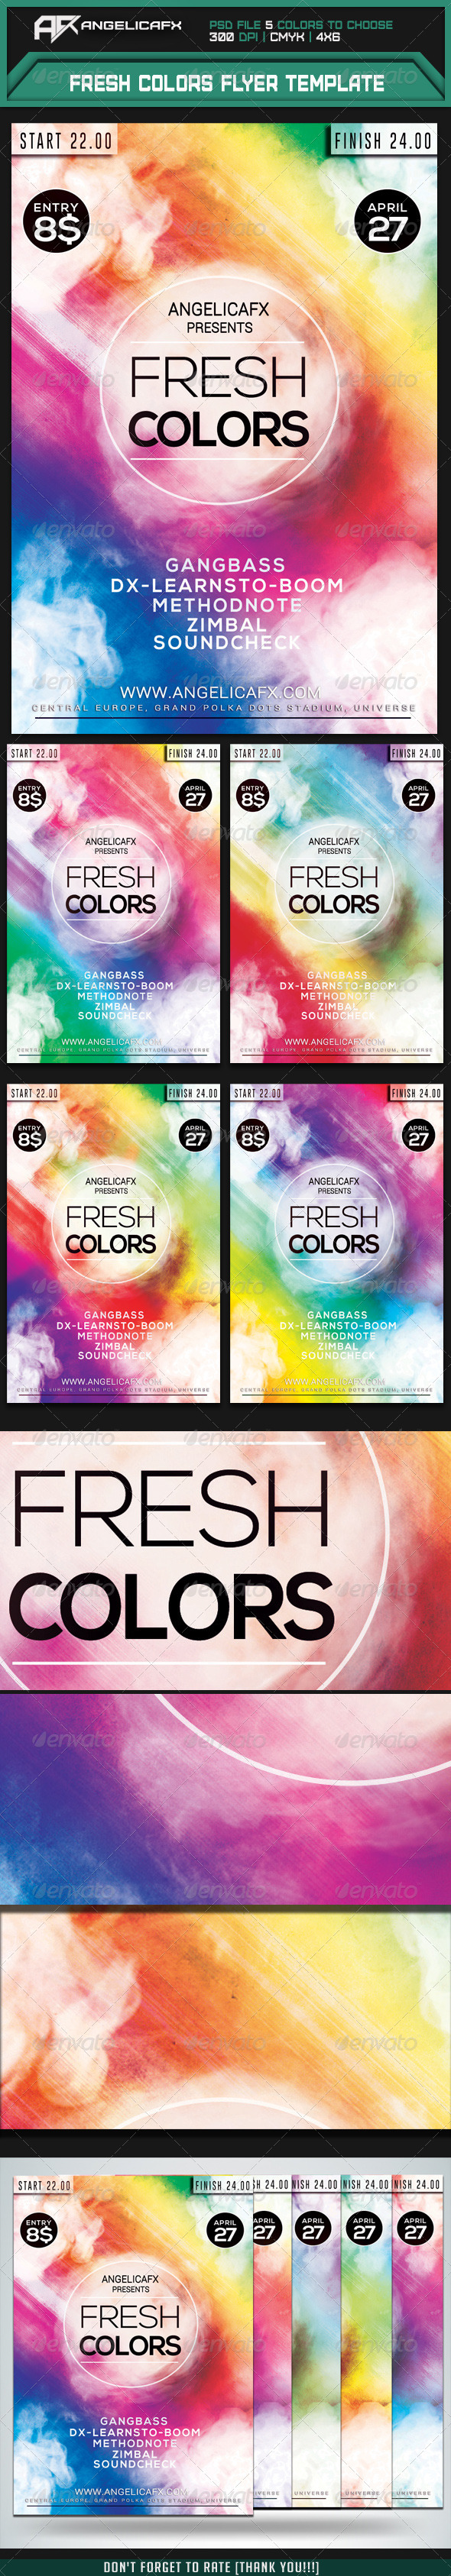 GraphicRiver Fresh Colors Flyer Template 7415188